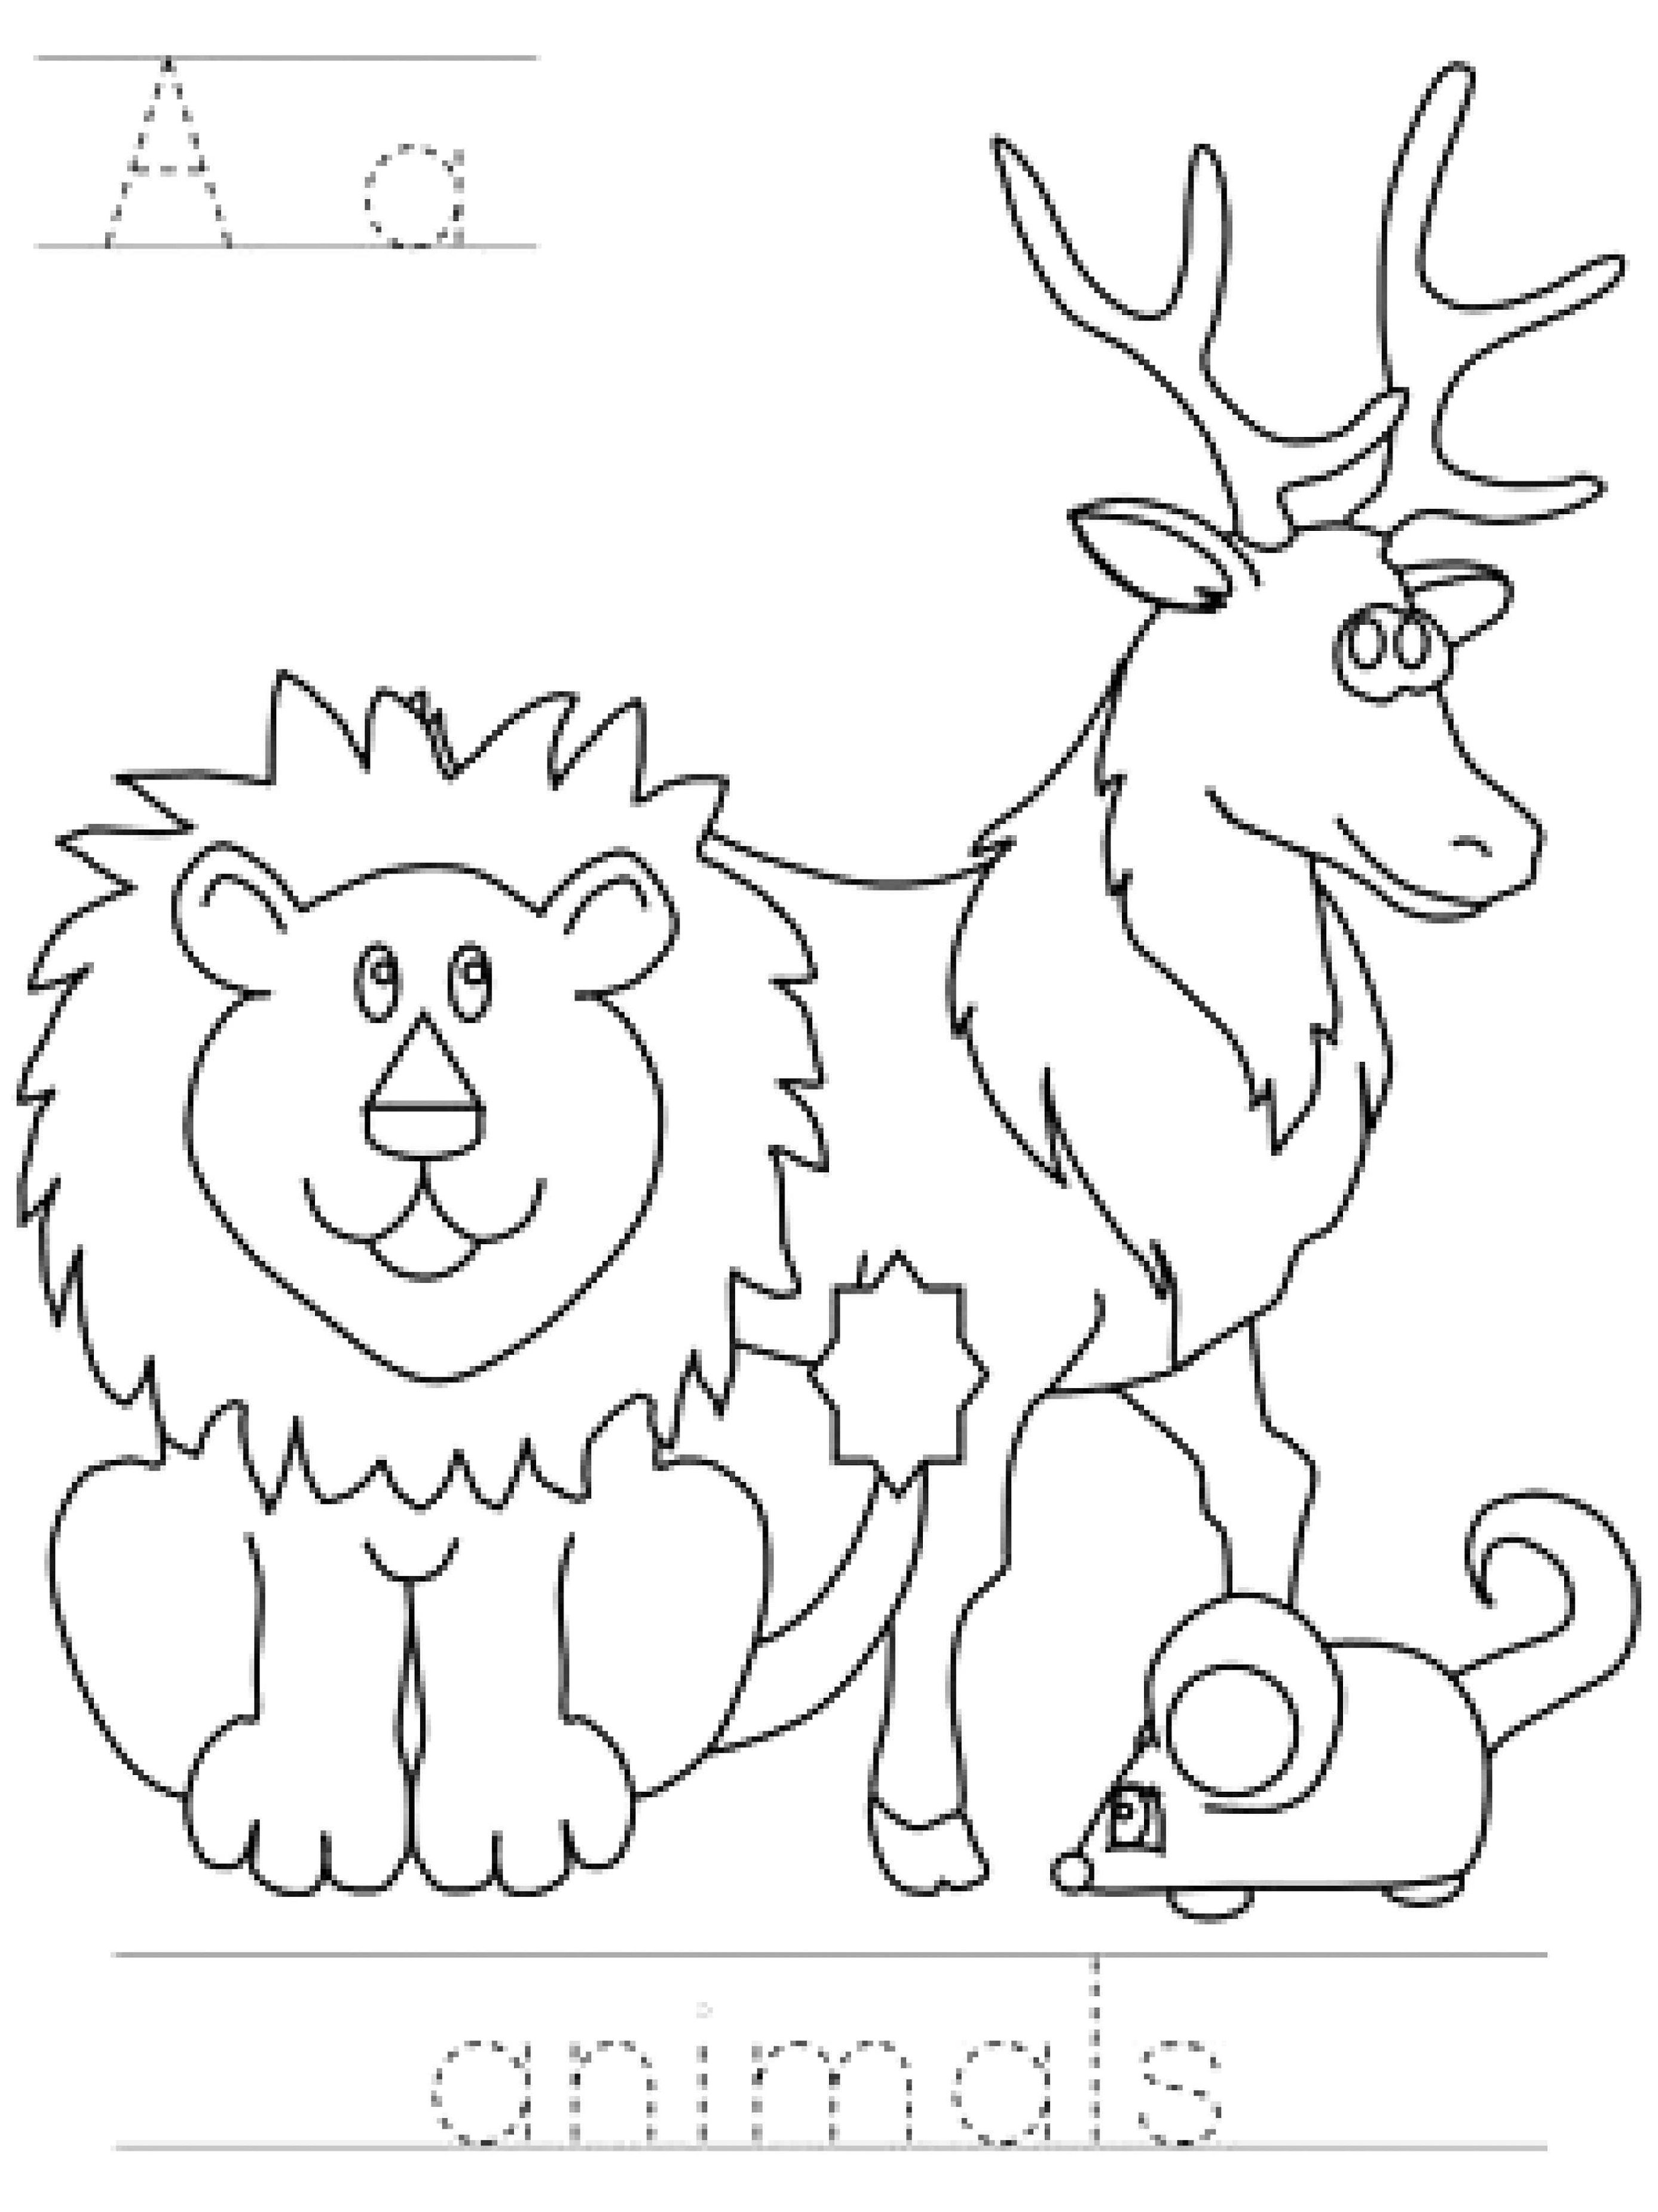 Dltk Coloring For 2019 K5 Worksheets In 2020 Earth Day Coloring Pages Spring Coloring Pages Printable Valentines Coloring Pages